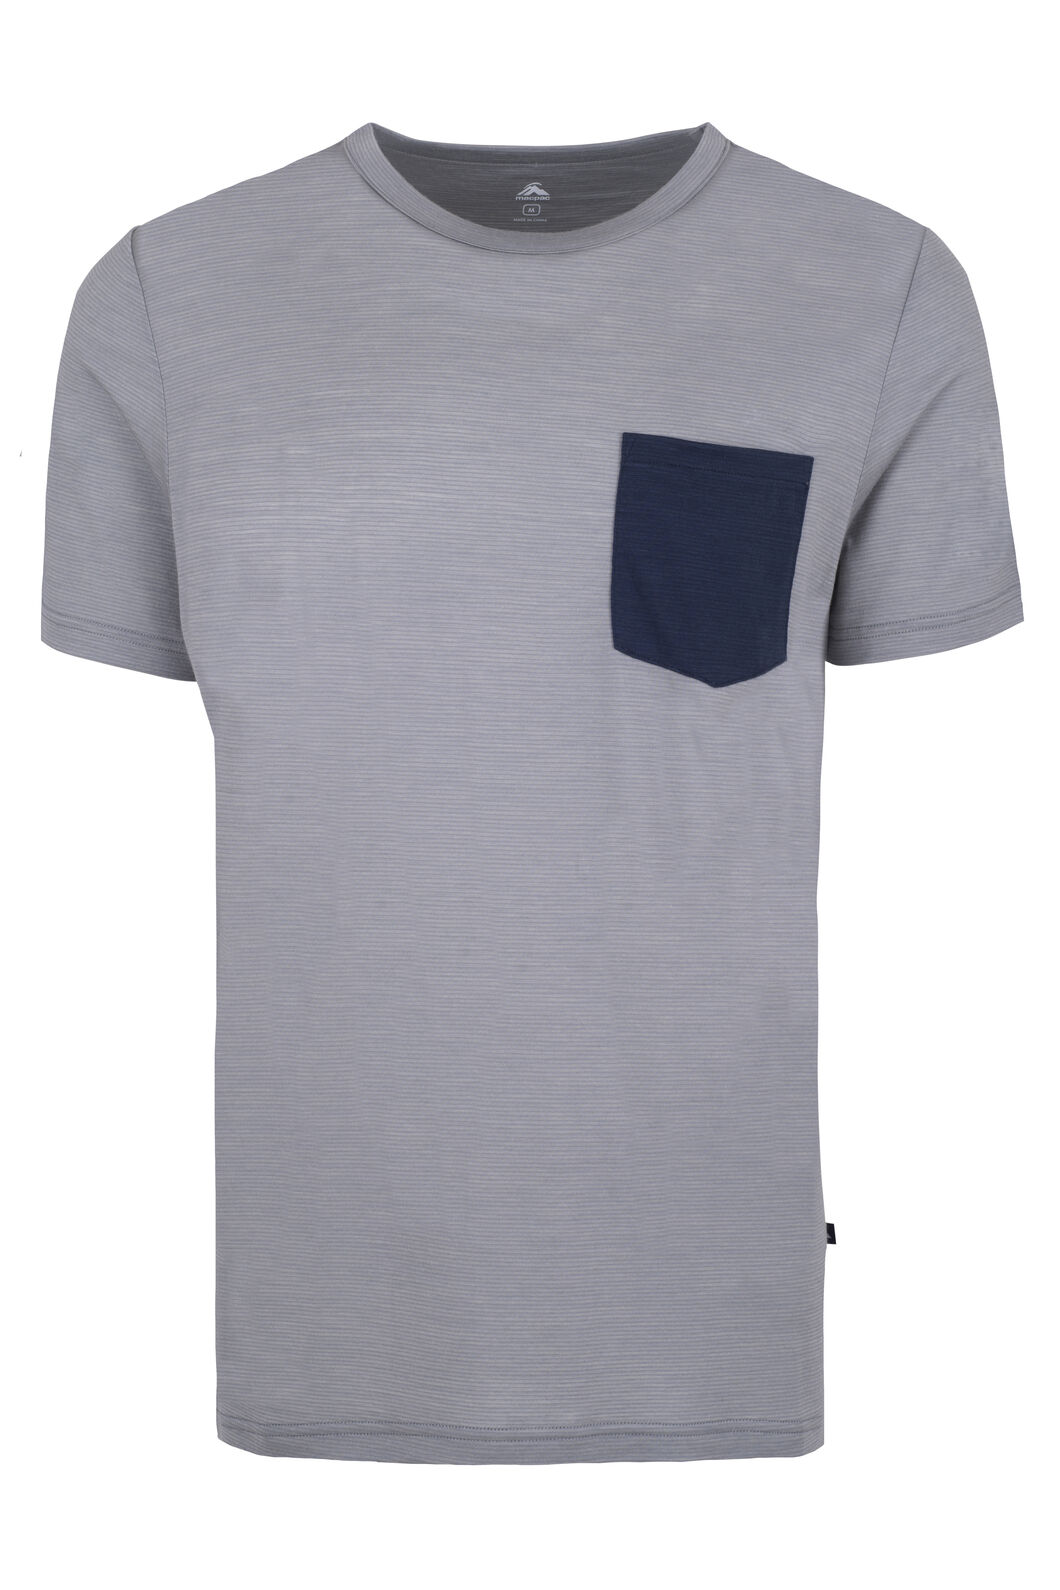 Macpac Merino Blend Travel Tee - Men's, Mid Grey, hi-res